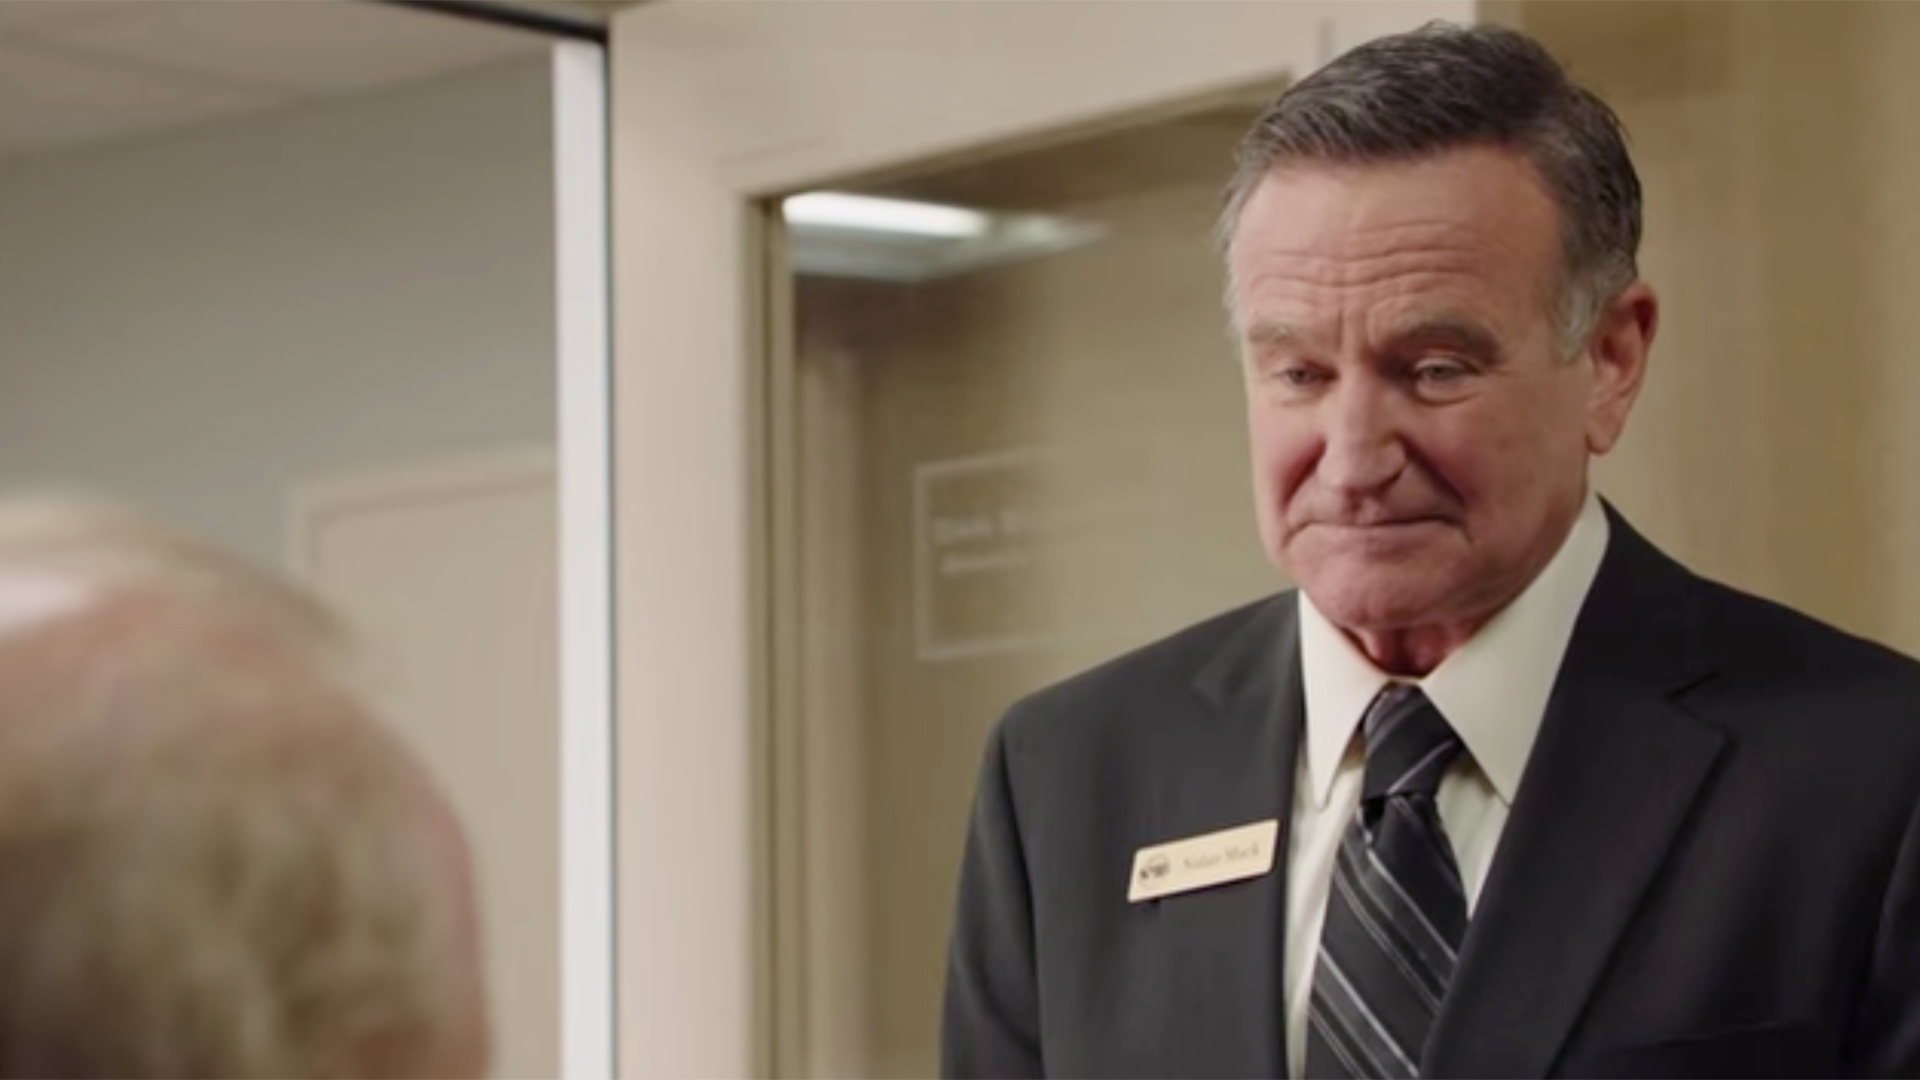 an analysis of the movie the awakening and the role of robin williams